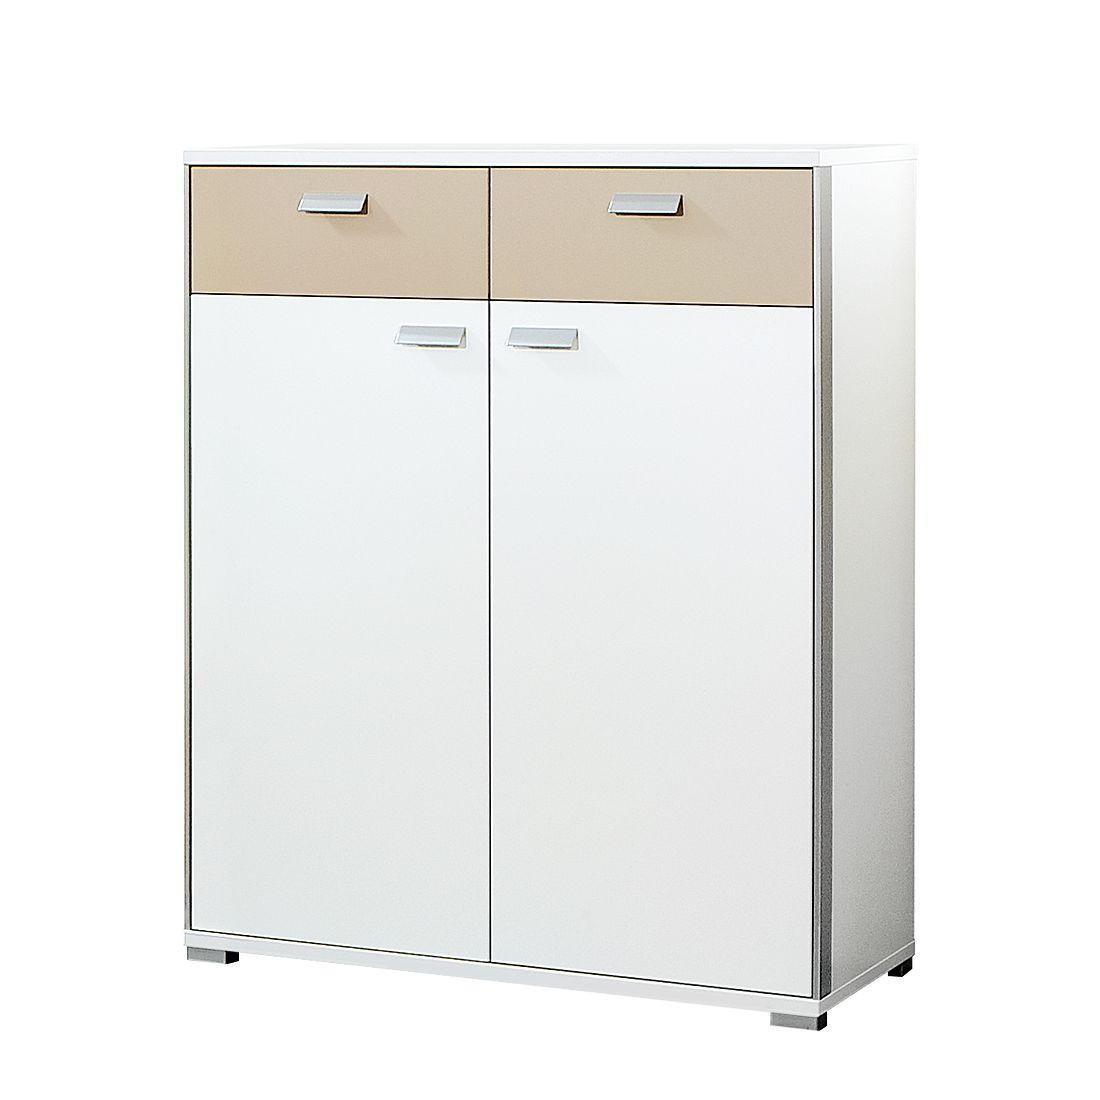 Home 24 - Commode bolton ii - blanc / sable, voss